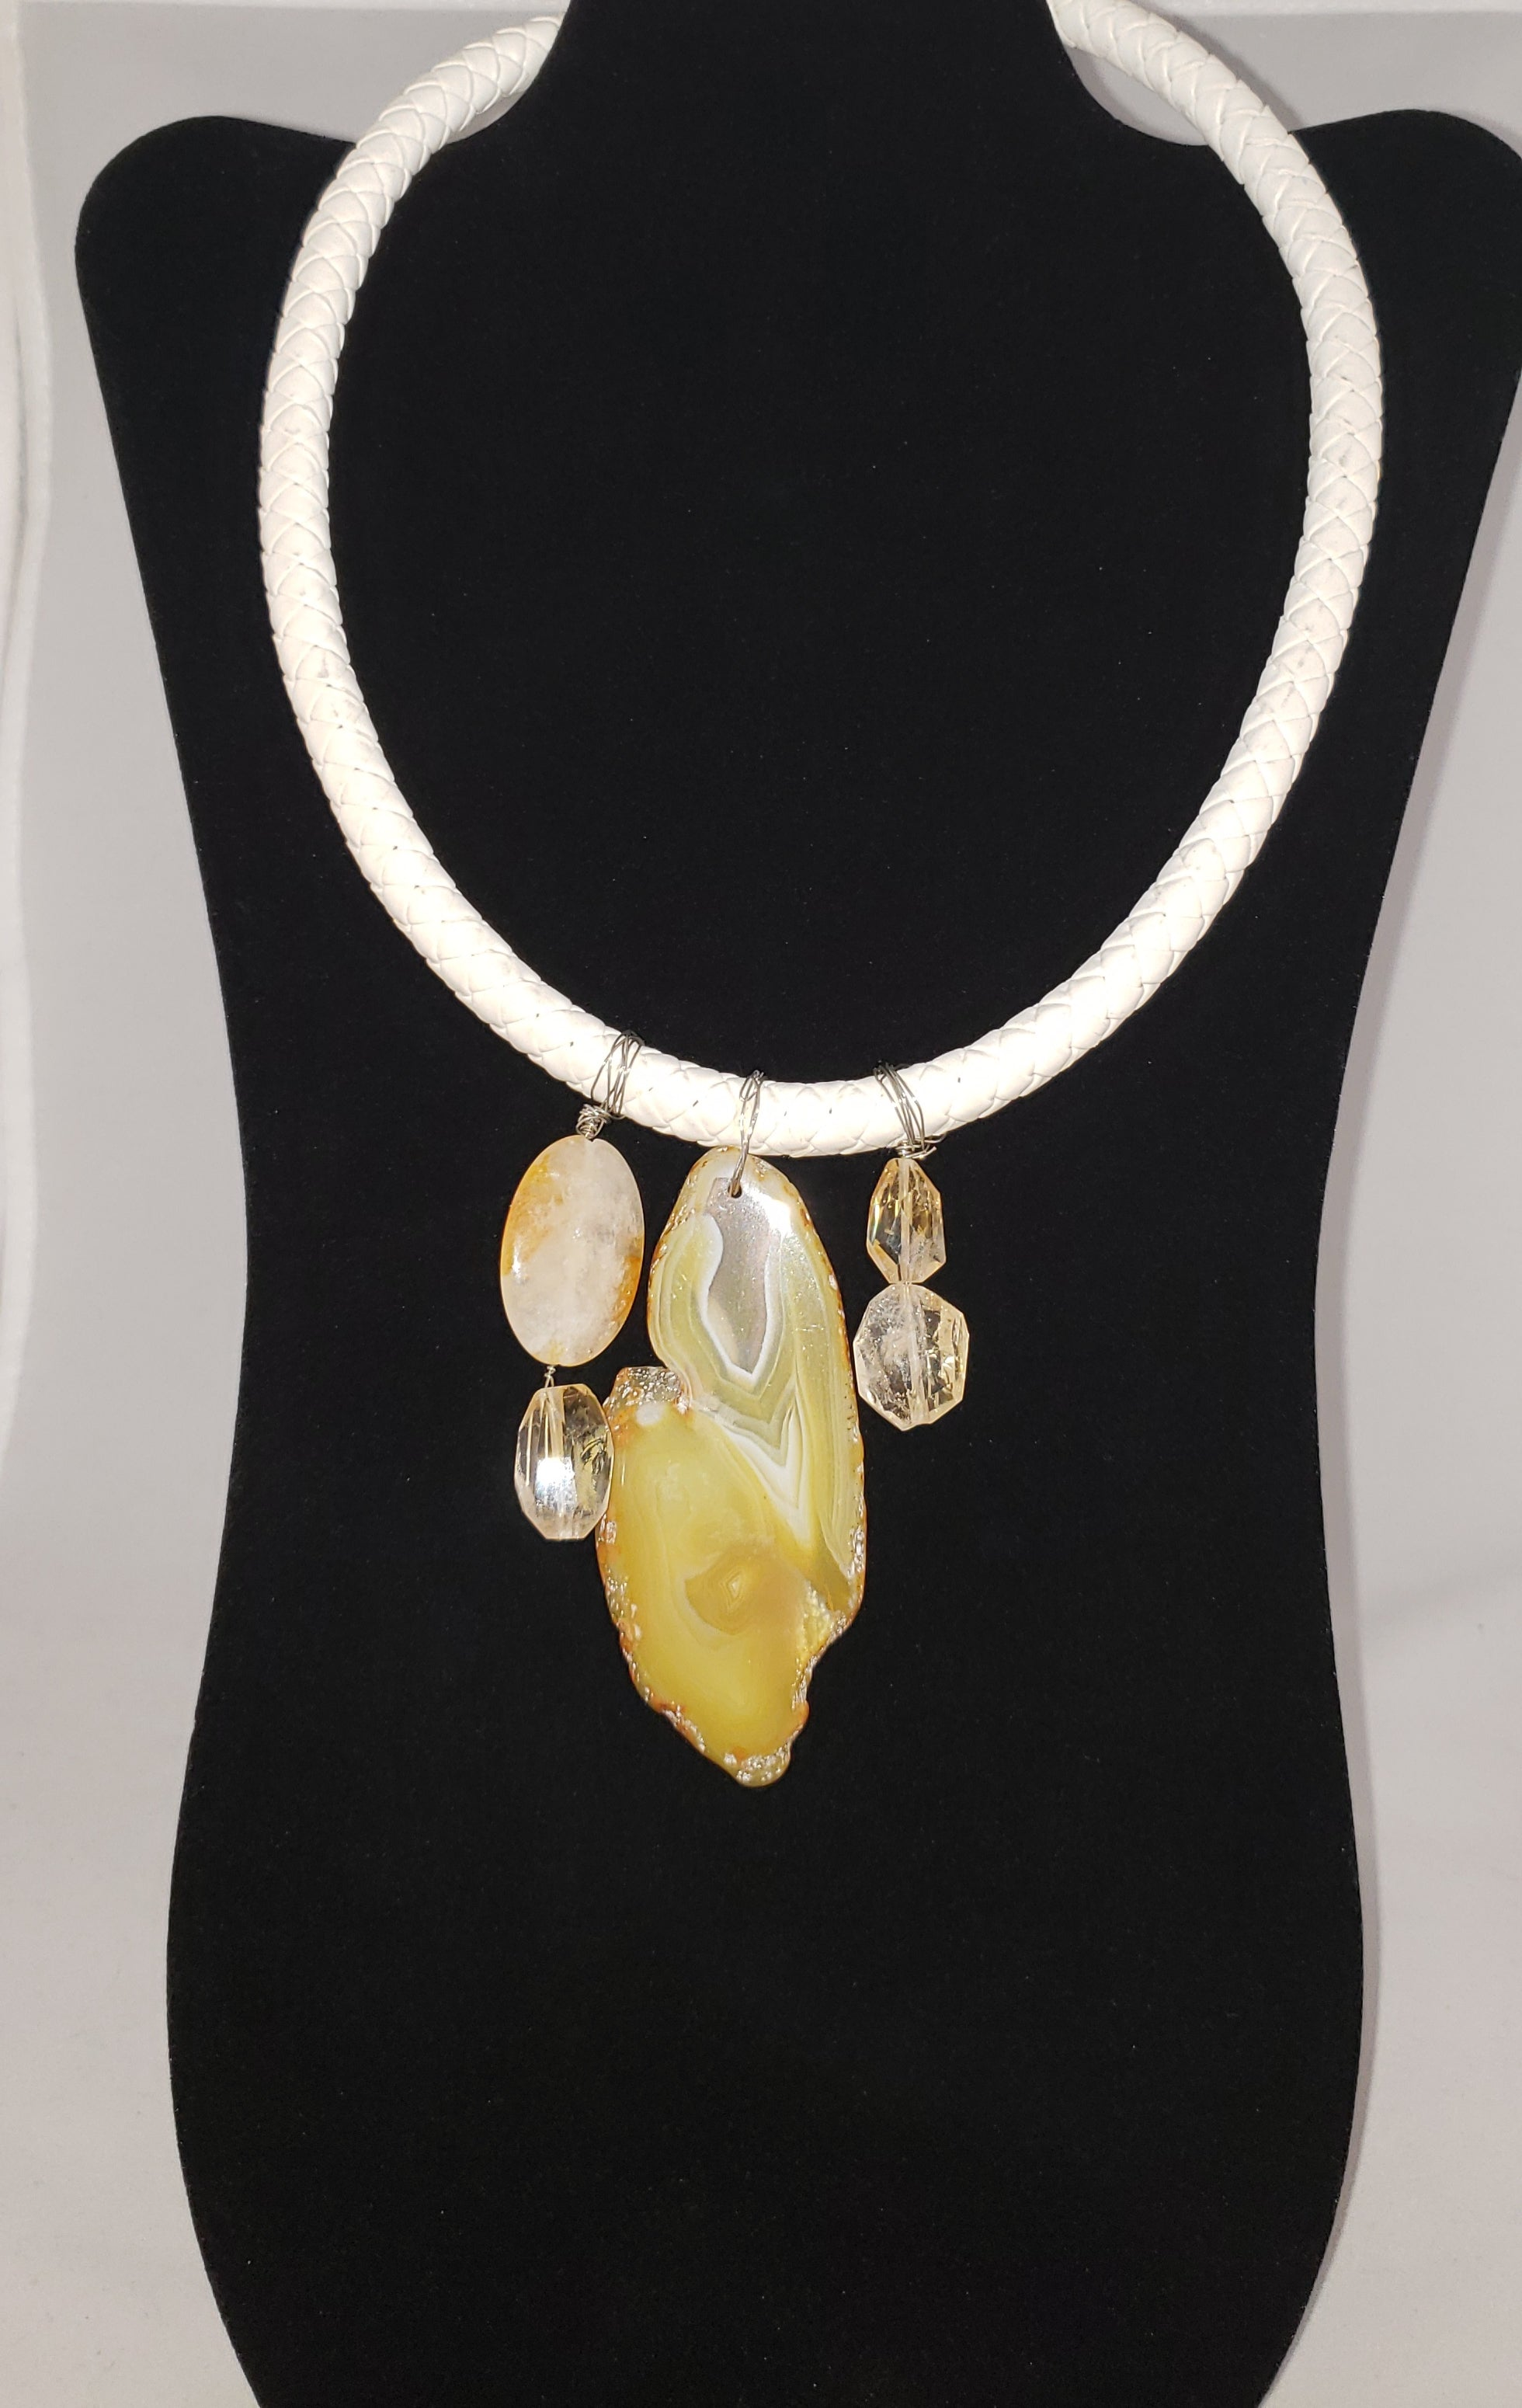 Lei White Leather, Citrine and Agate Necklace